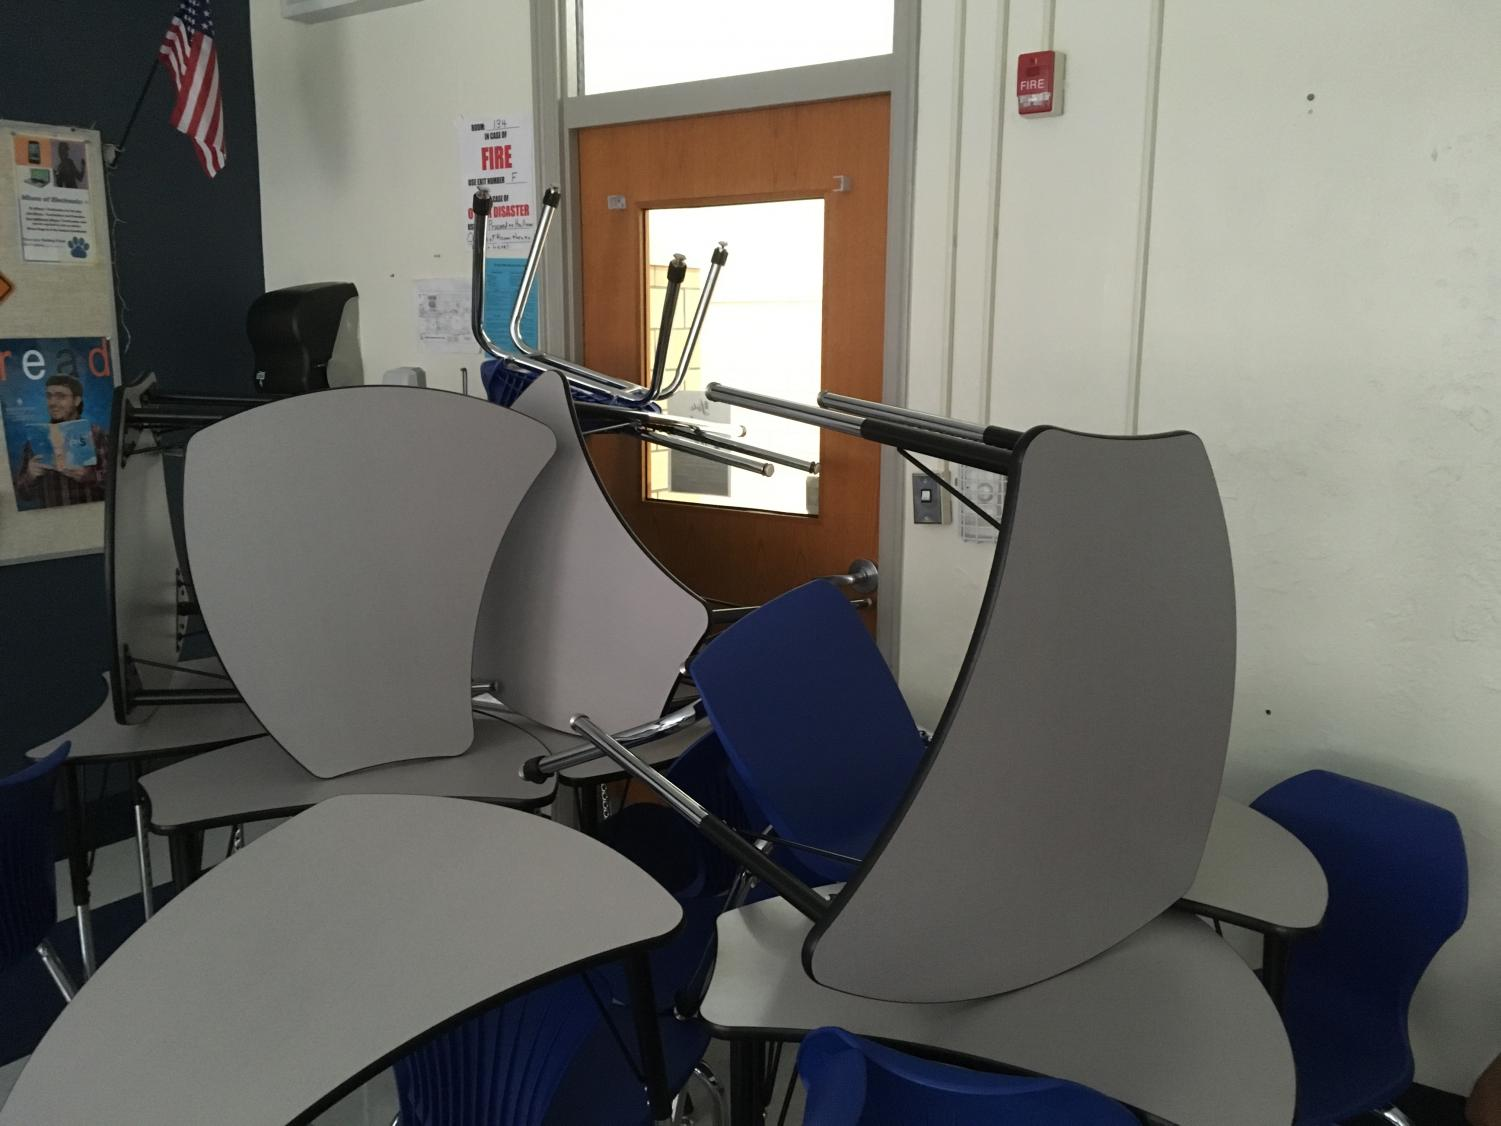 Chairs barricade the door during a lockdown drill. Photo by Clarion staff